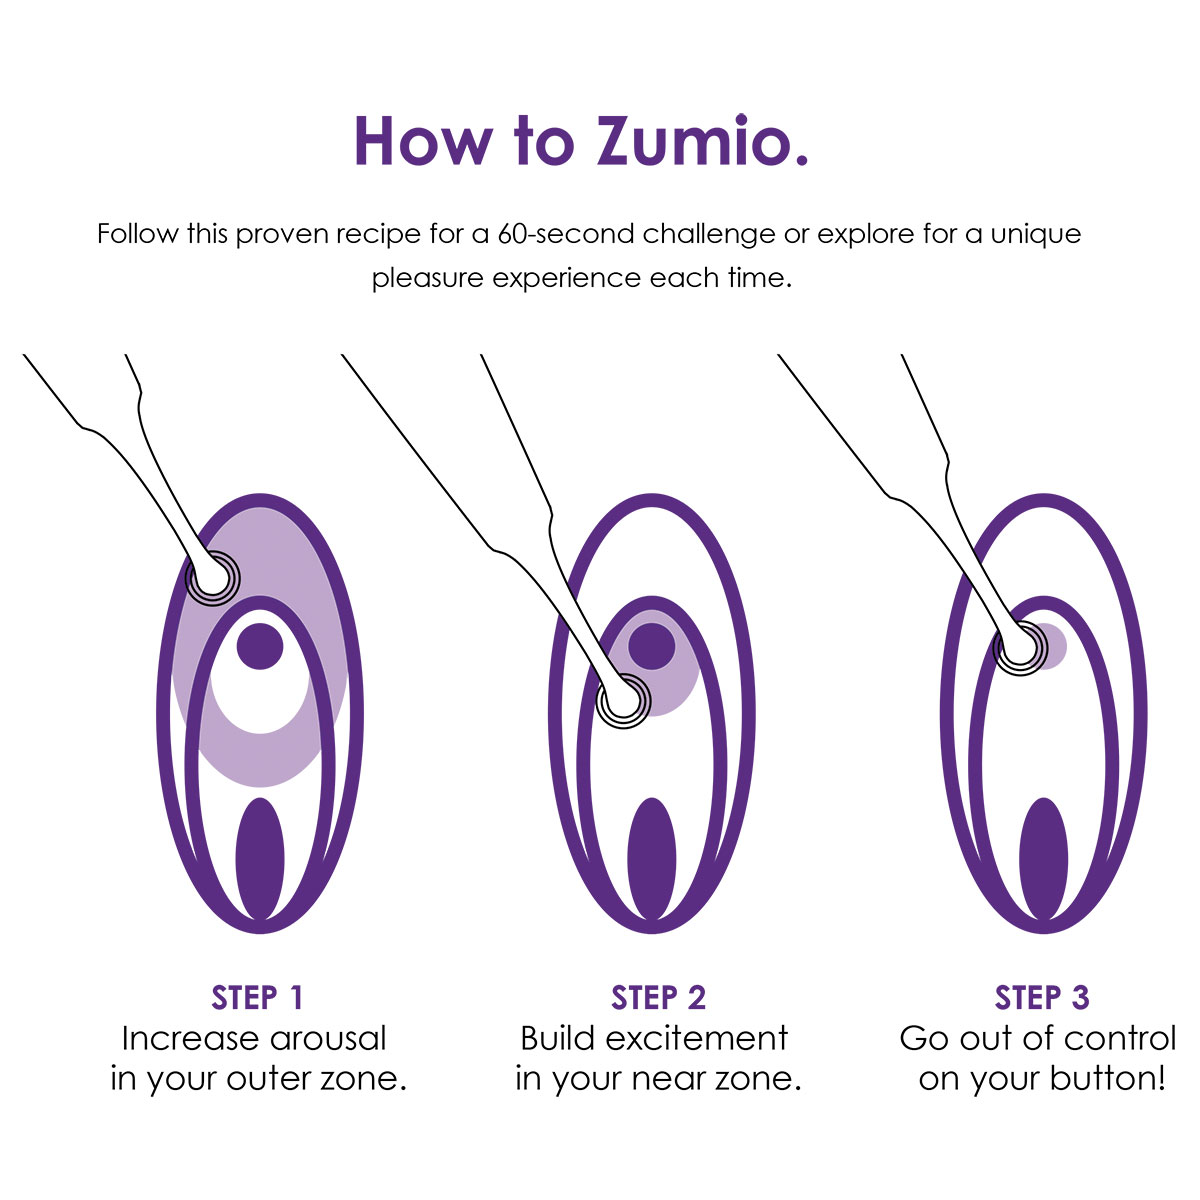 zumio-how-to-use-2.jpg